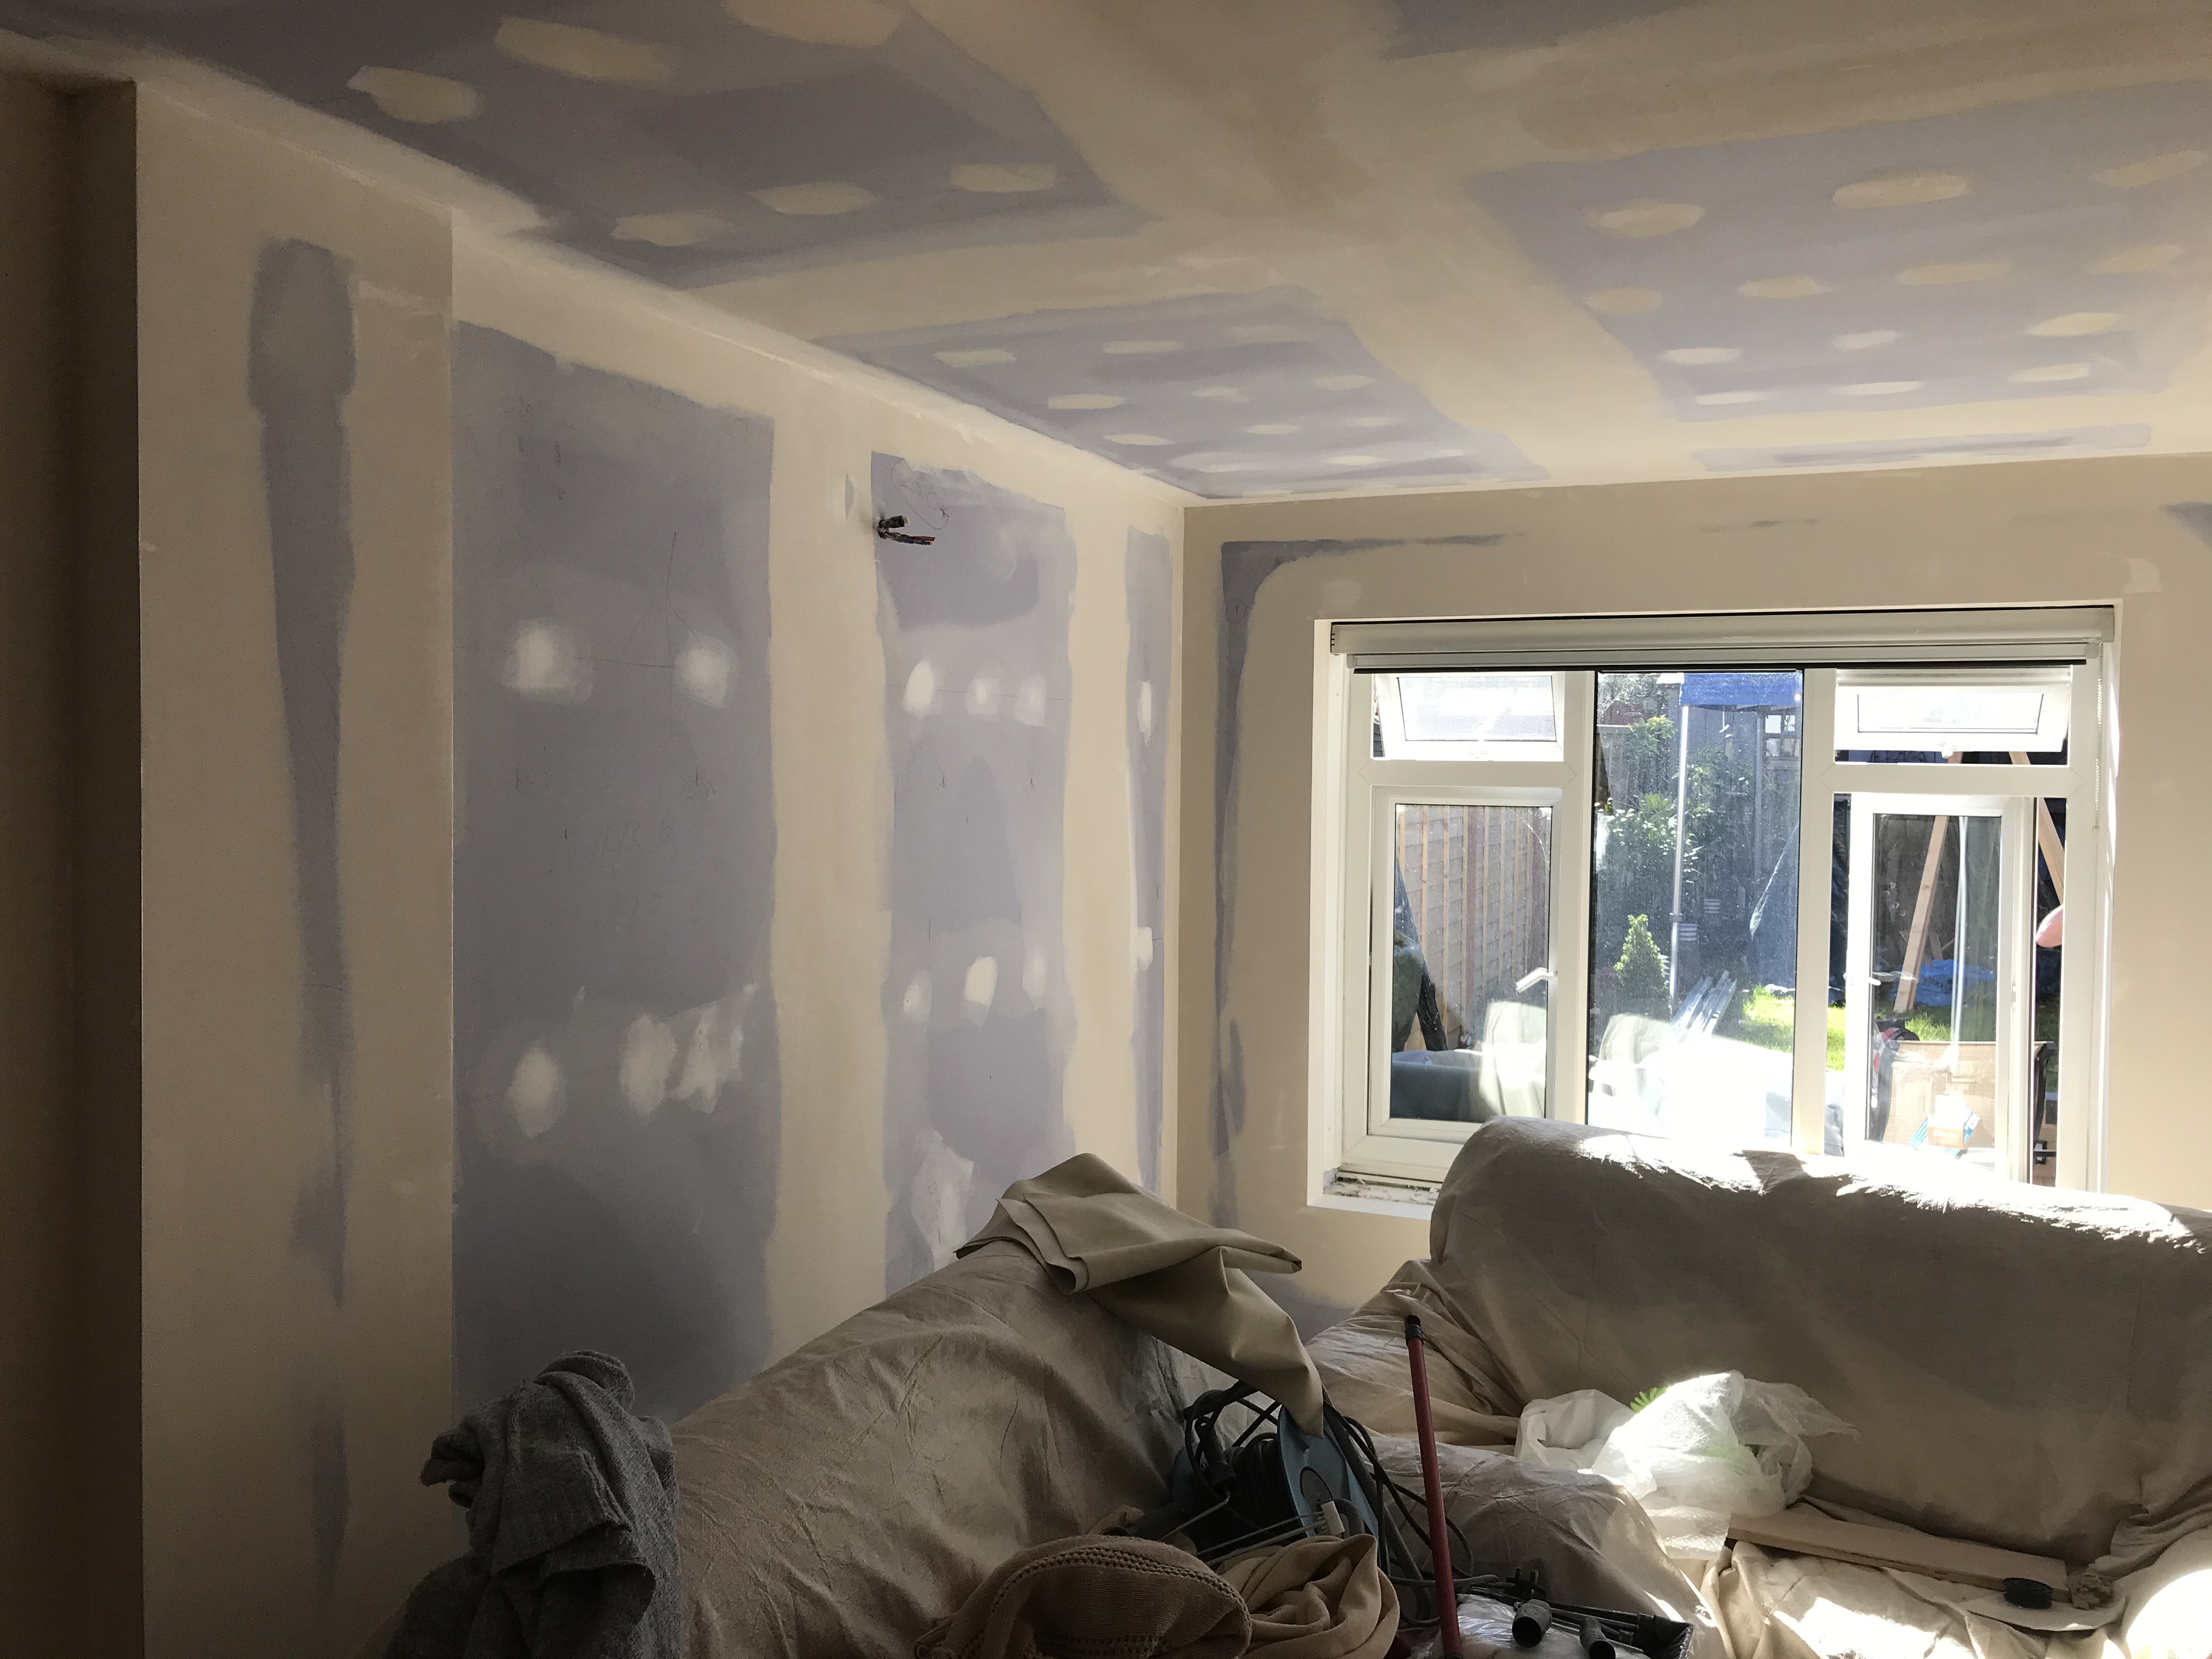 soundproofing case study